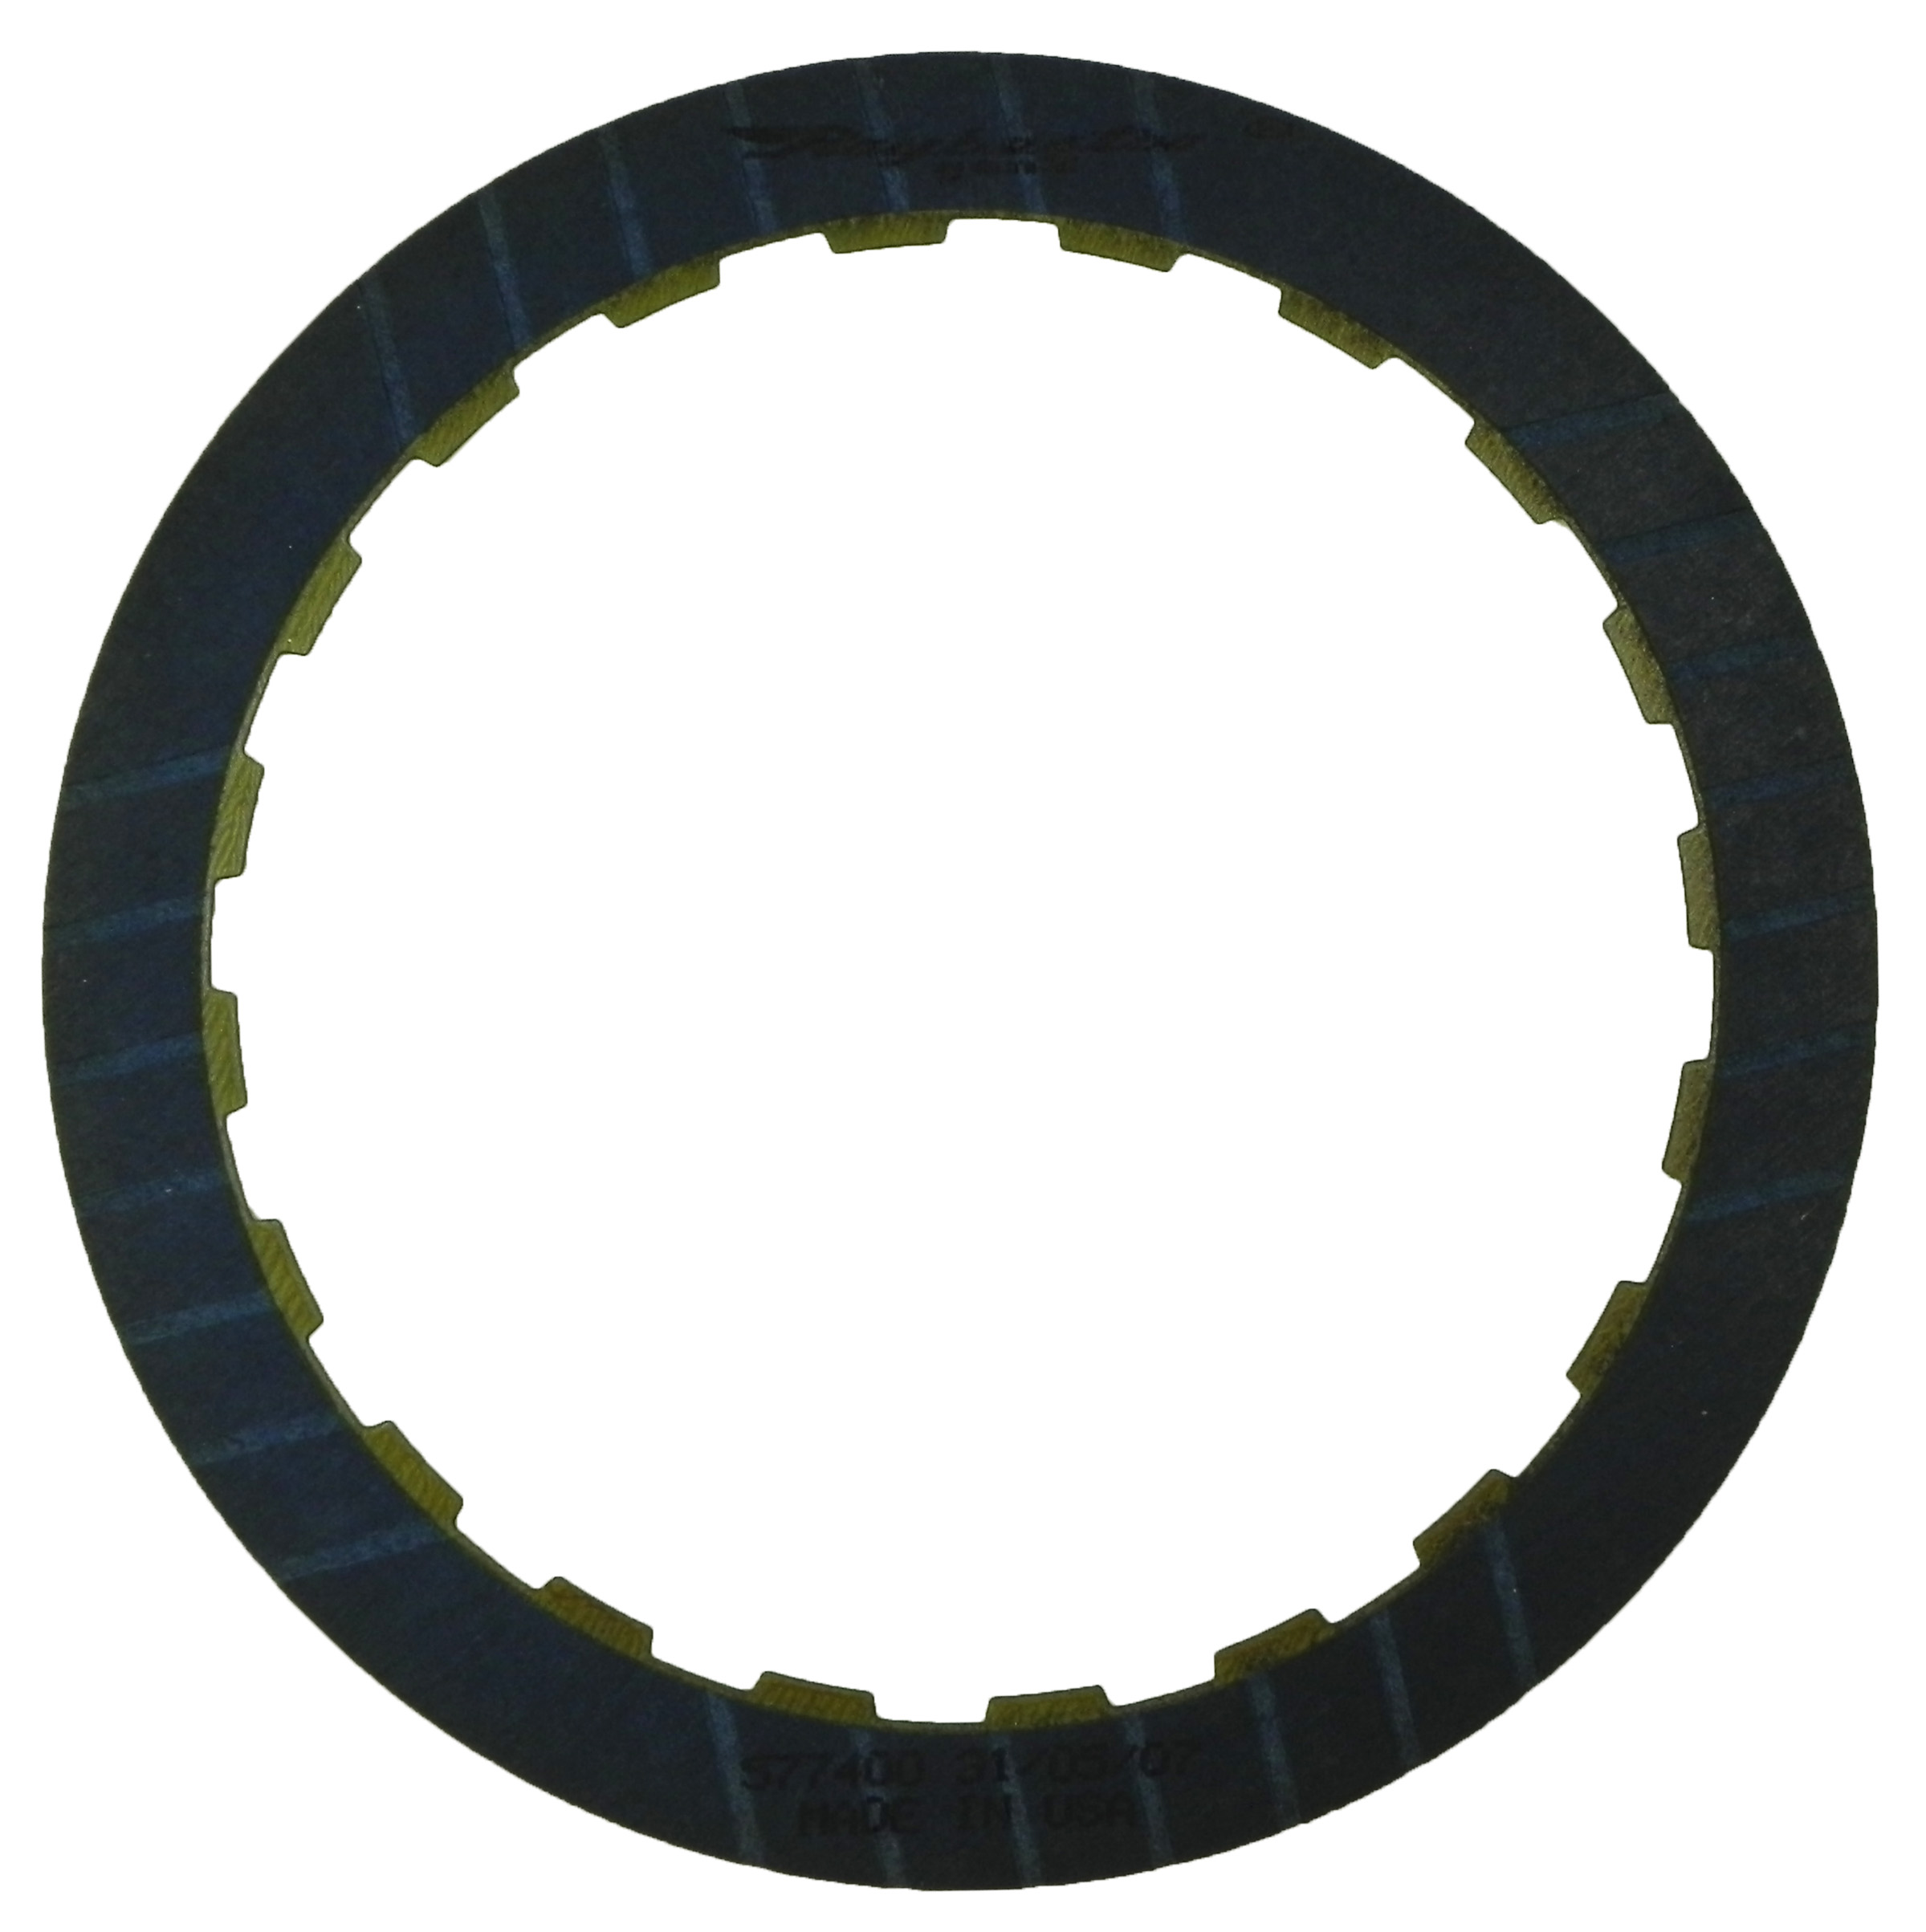 R577400 | 1969-1986 Friction Clutch Plate GEN 2, Blue Plate Special Forward, Direct GEN 2, Race Product